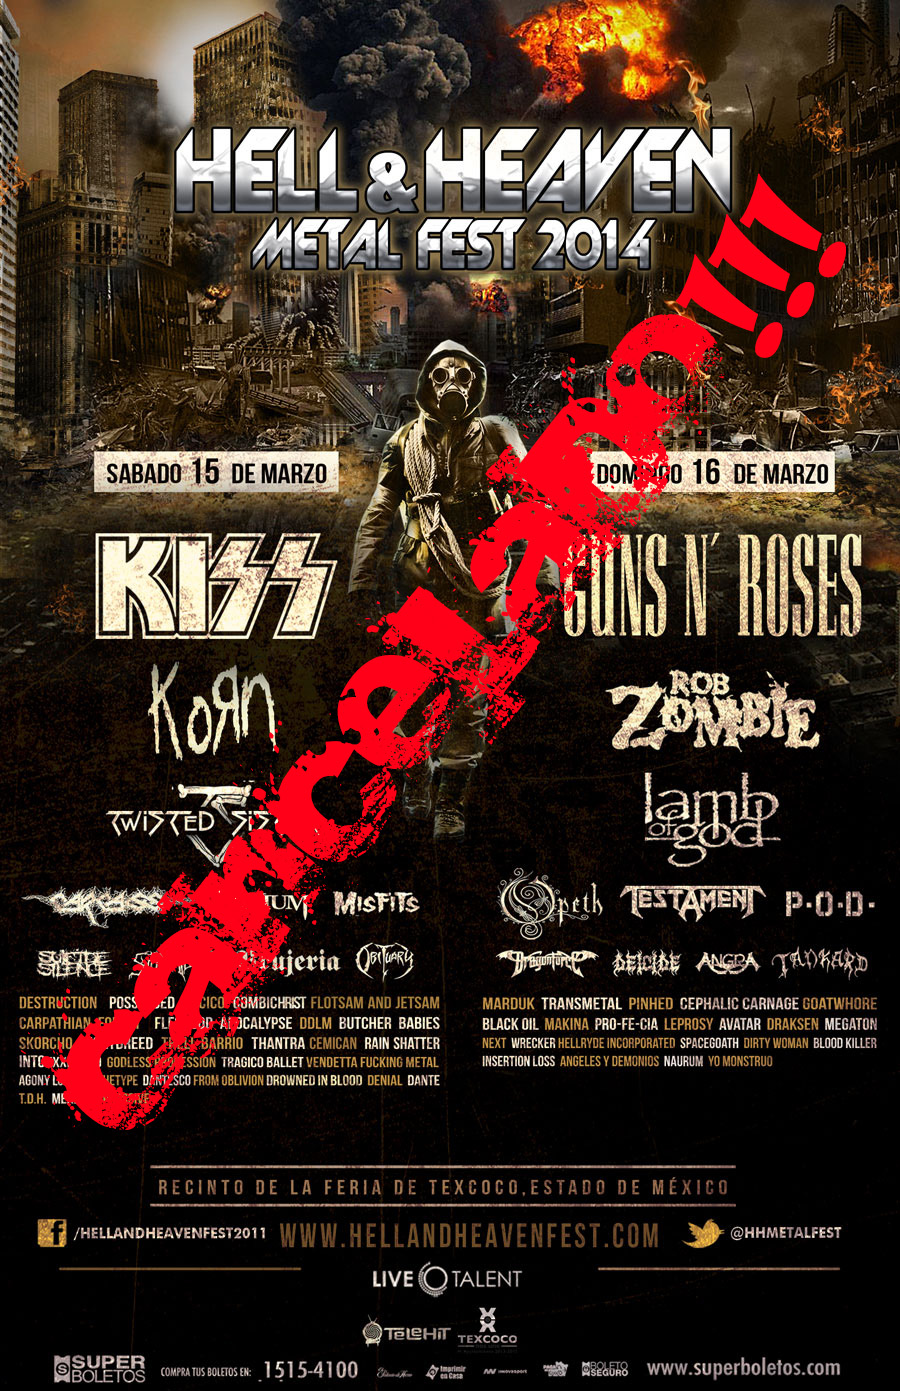 """Hell & Heaven Metal Fest 2014"" Cancelado"